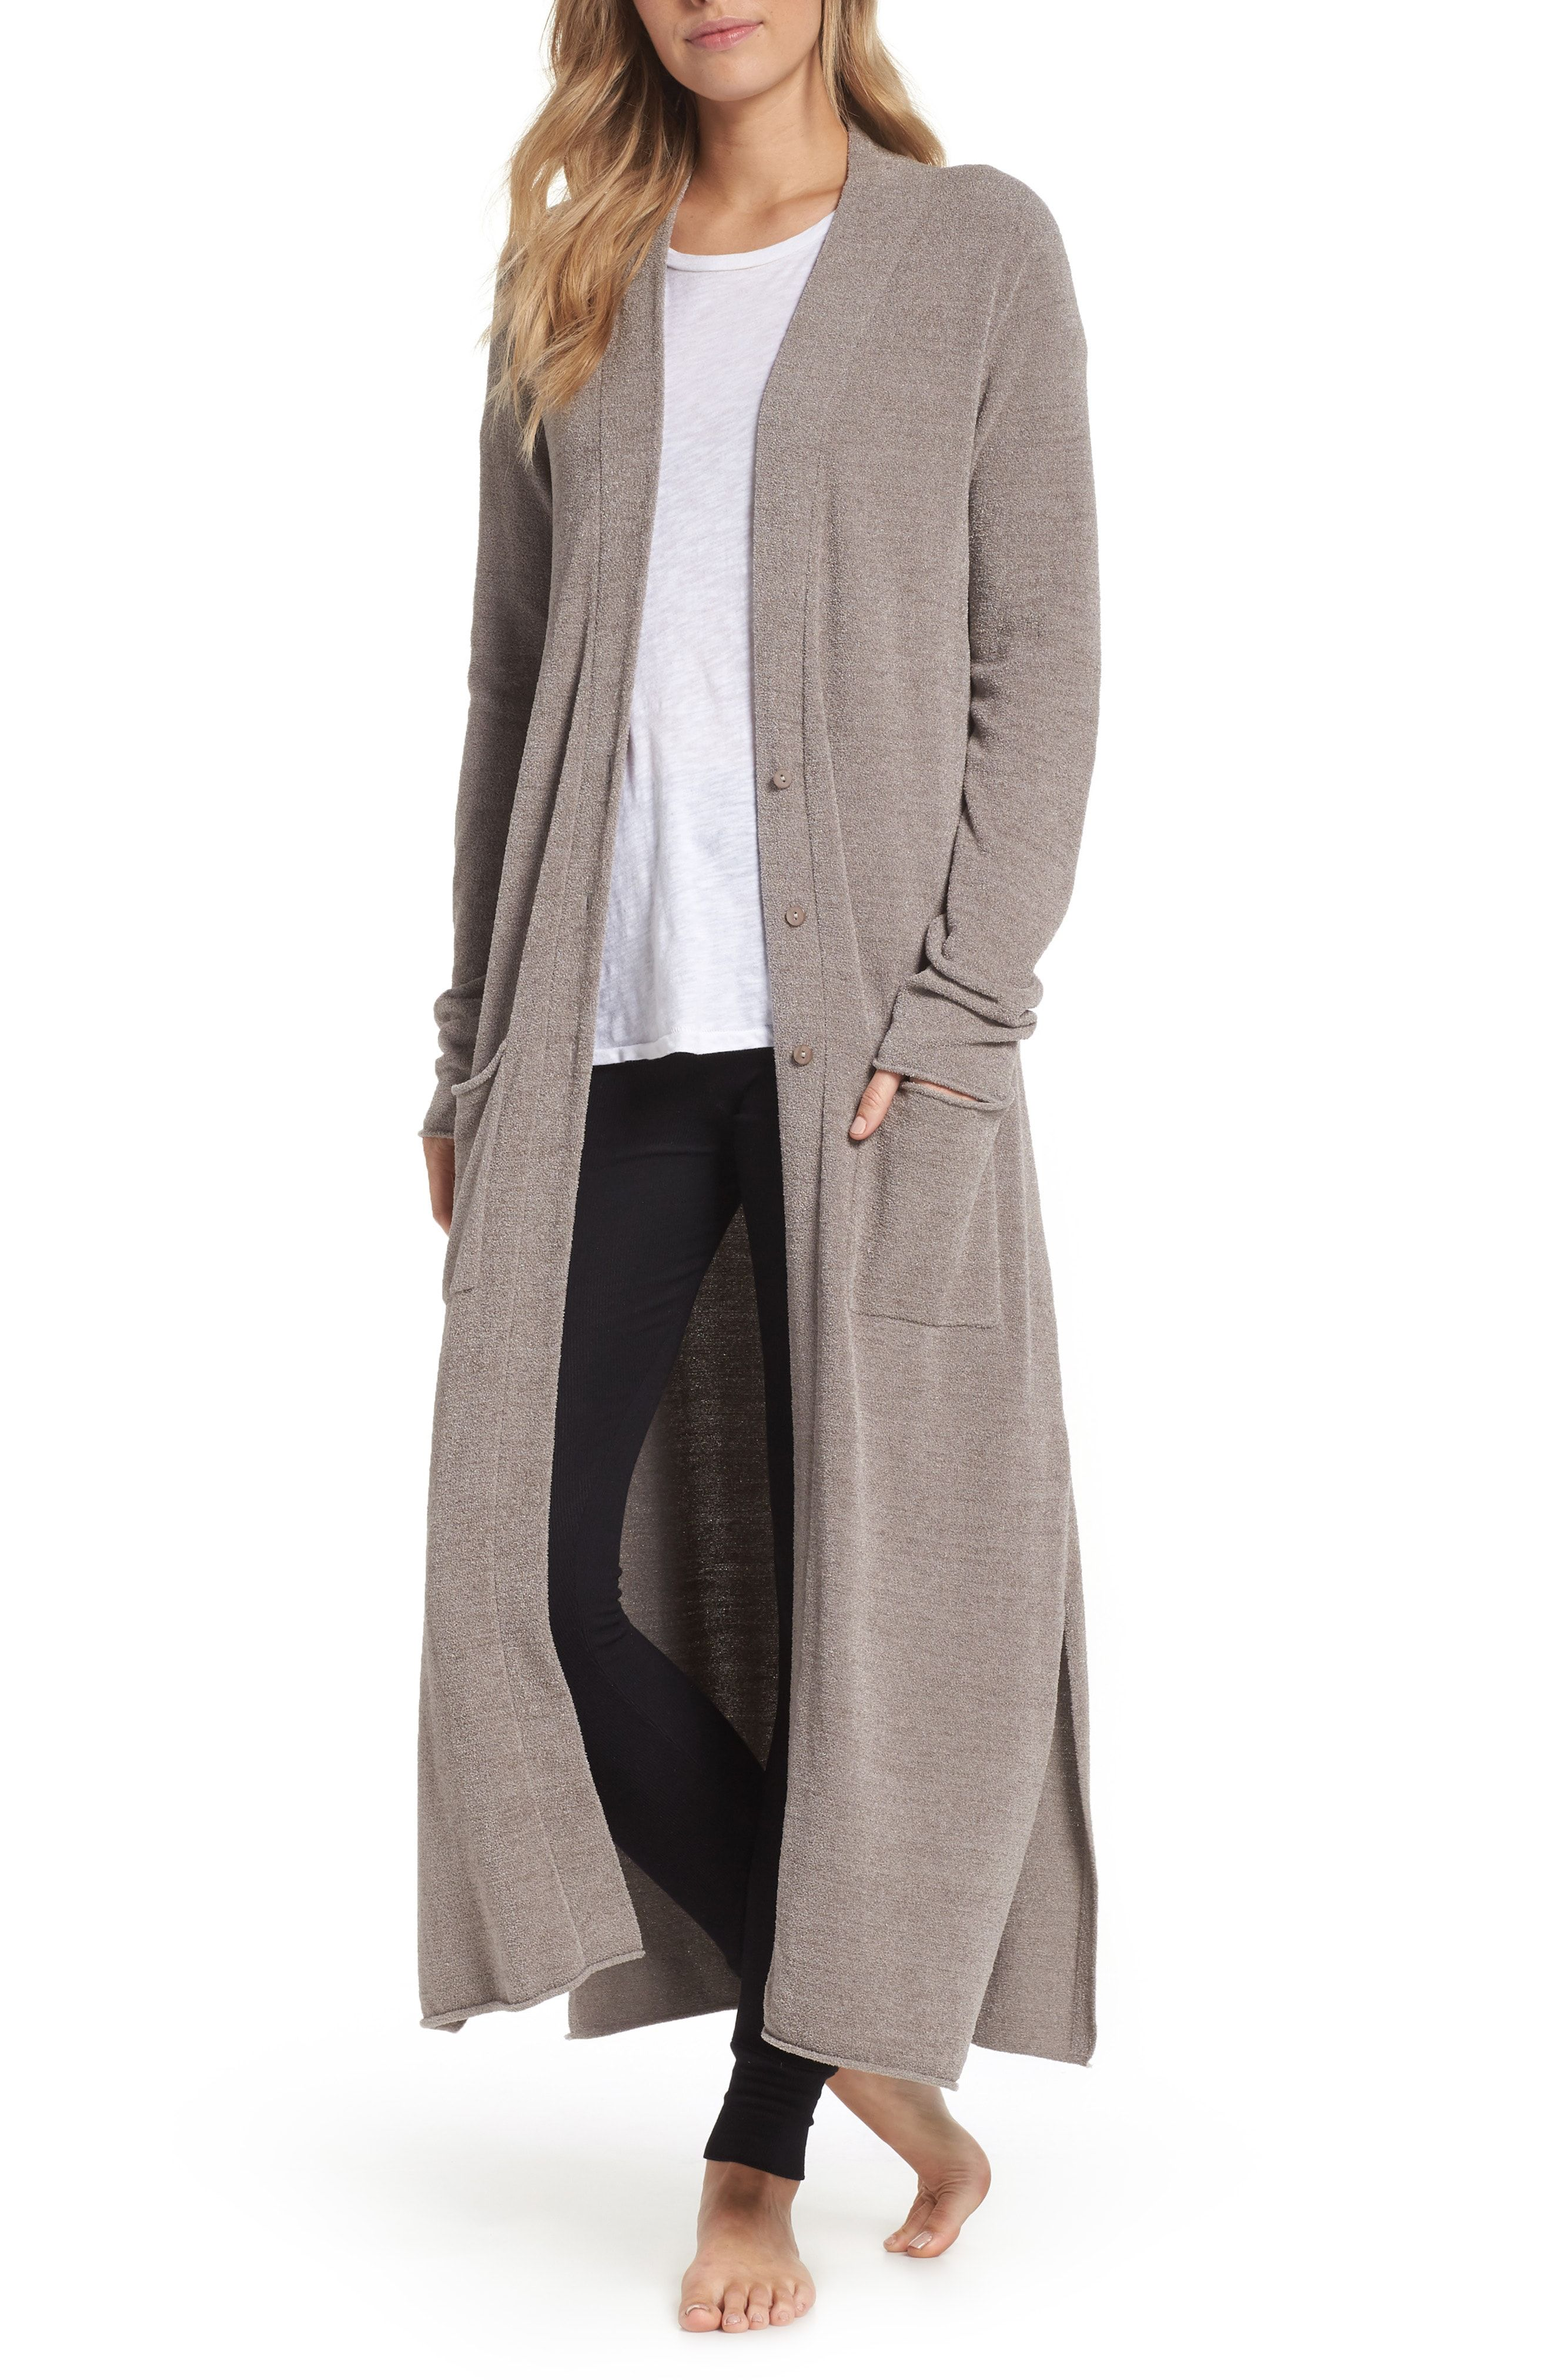 af58567a686 Barefoot Dreams® Barefoot Dreams Cozychic Ultra Lite® Duster ...